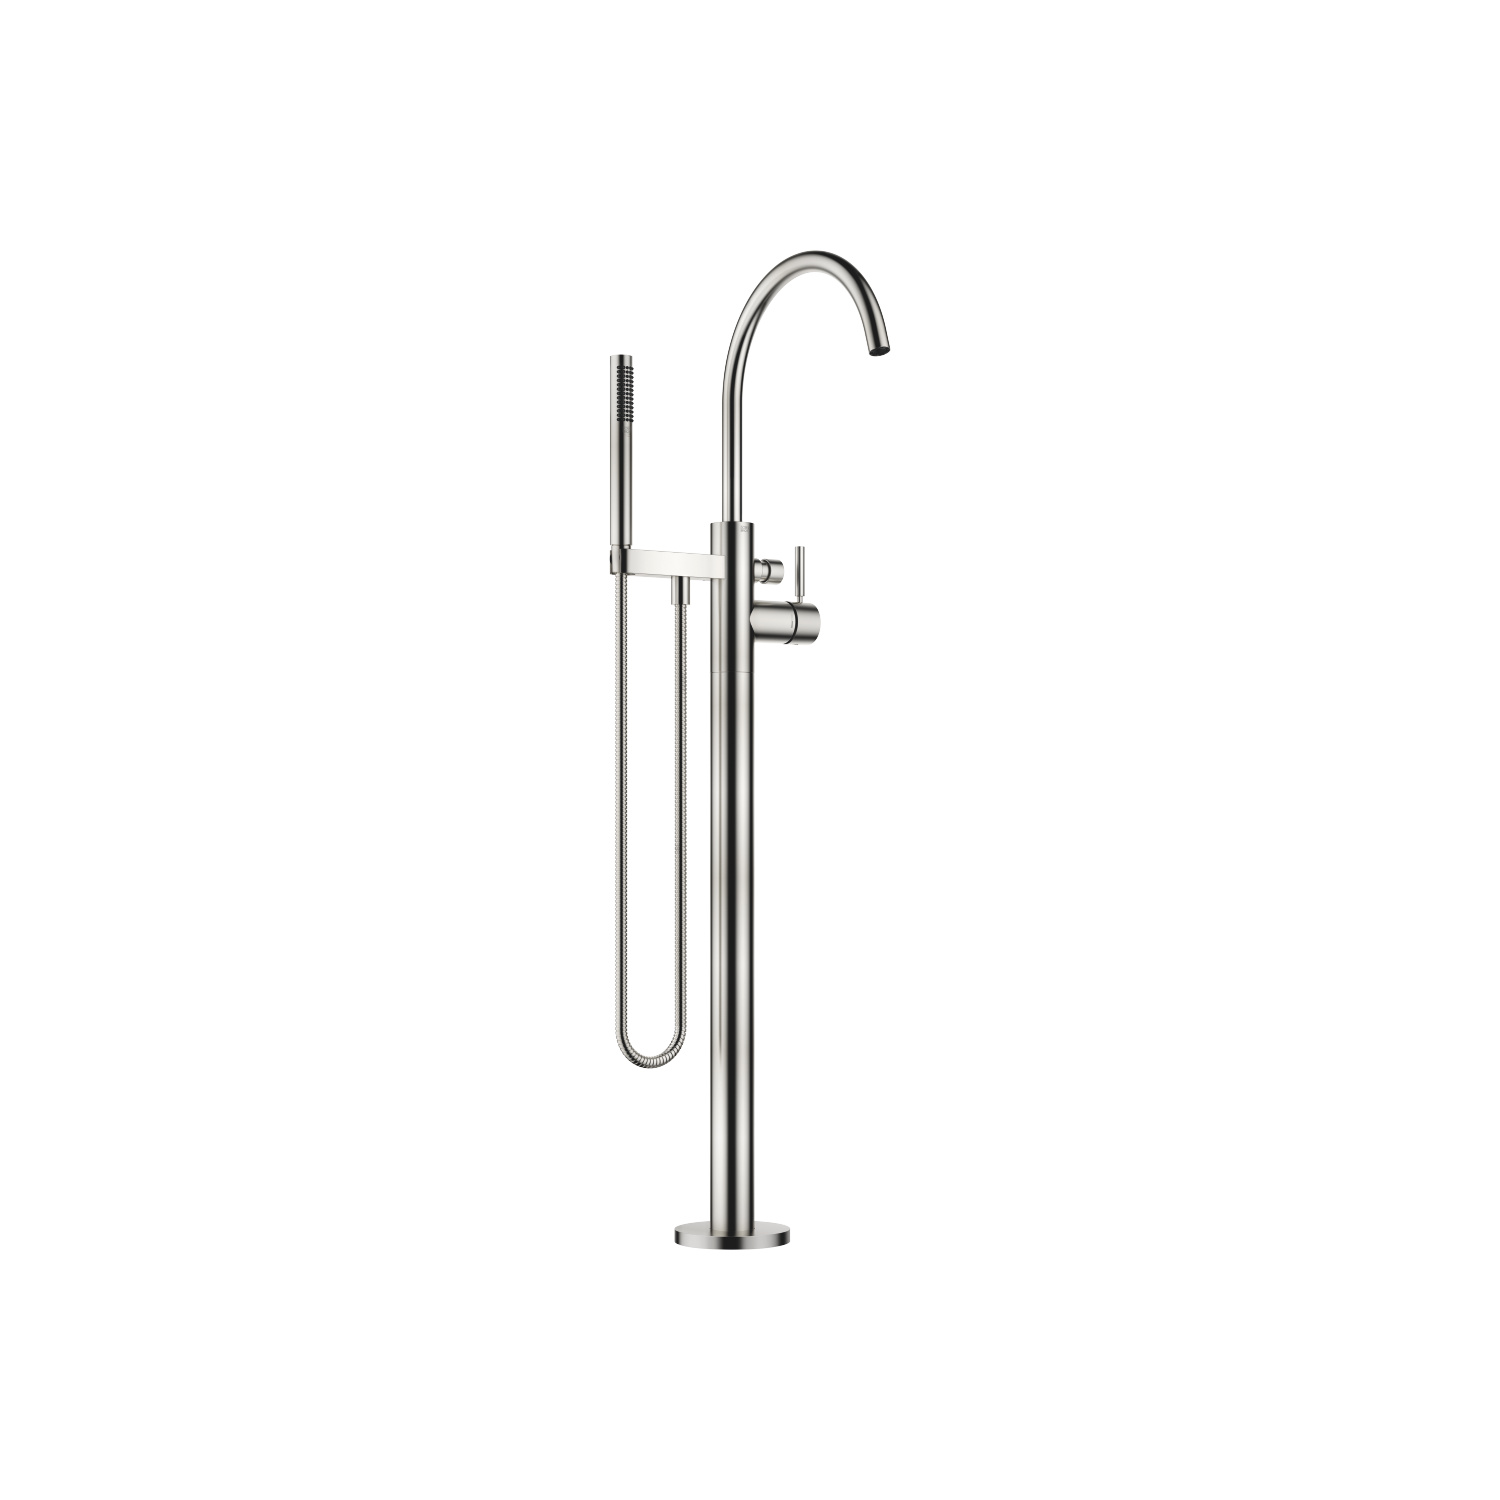 Single-lever tub mixer for freestanding installation with hand shower set - platinum matte